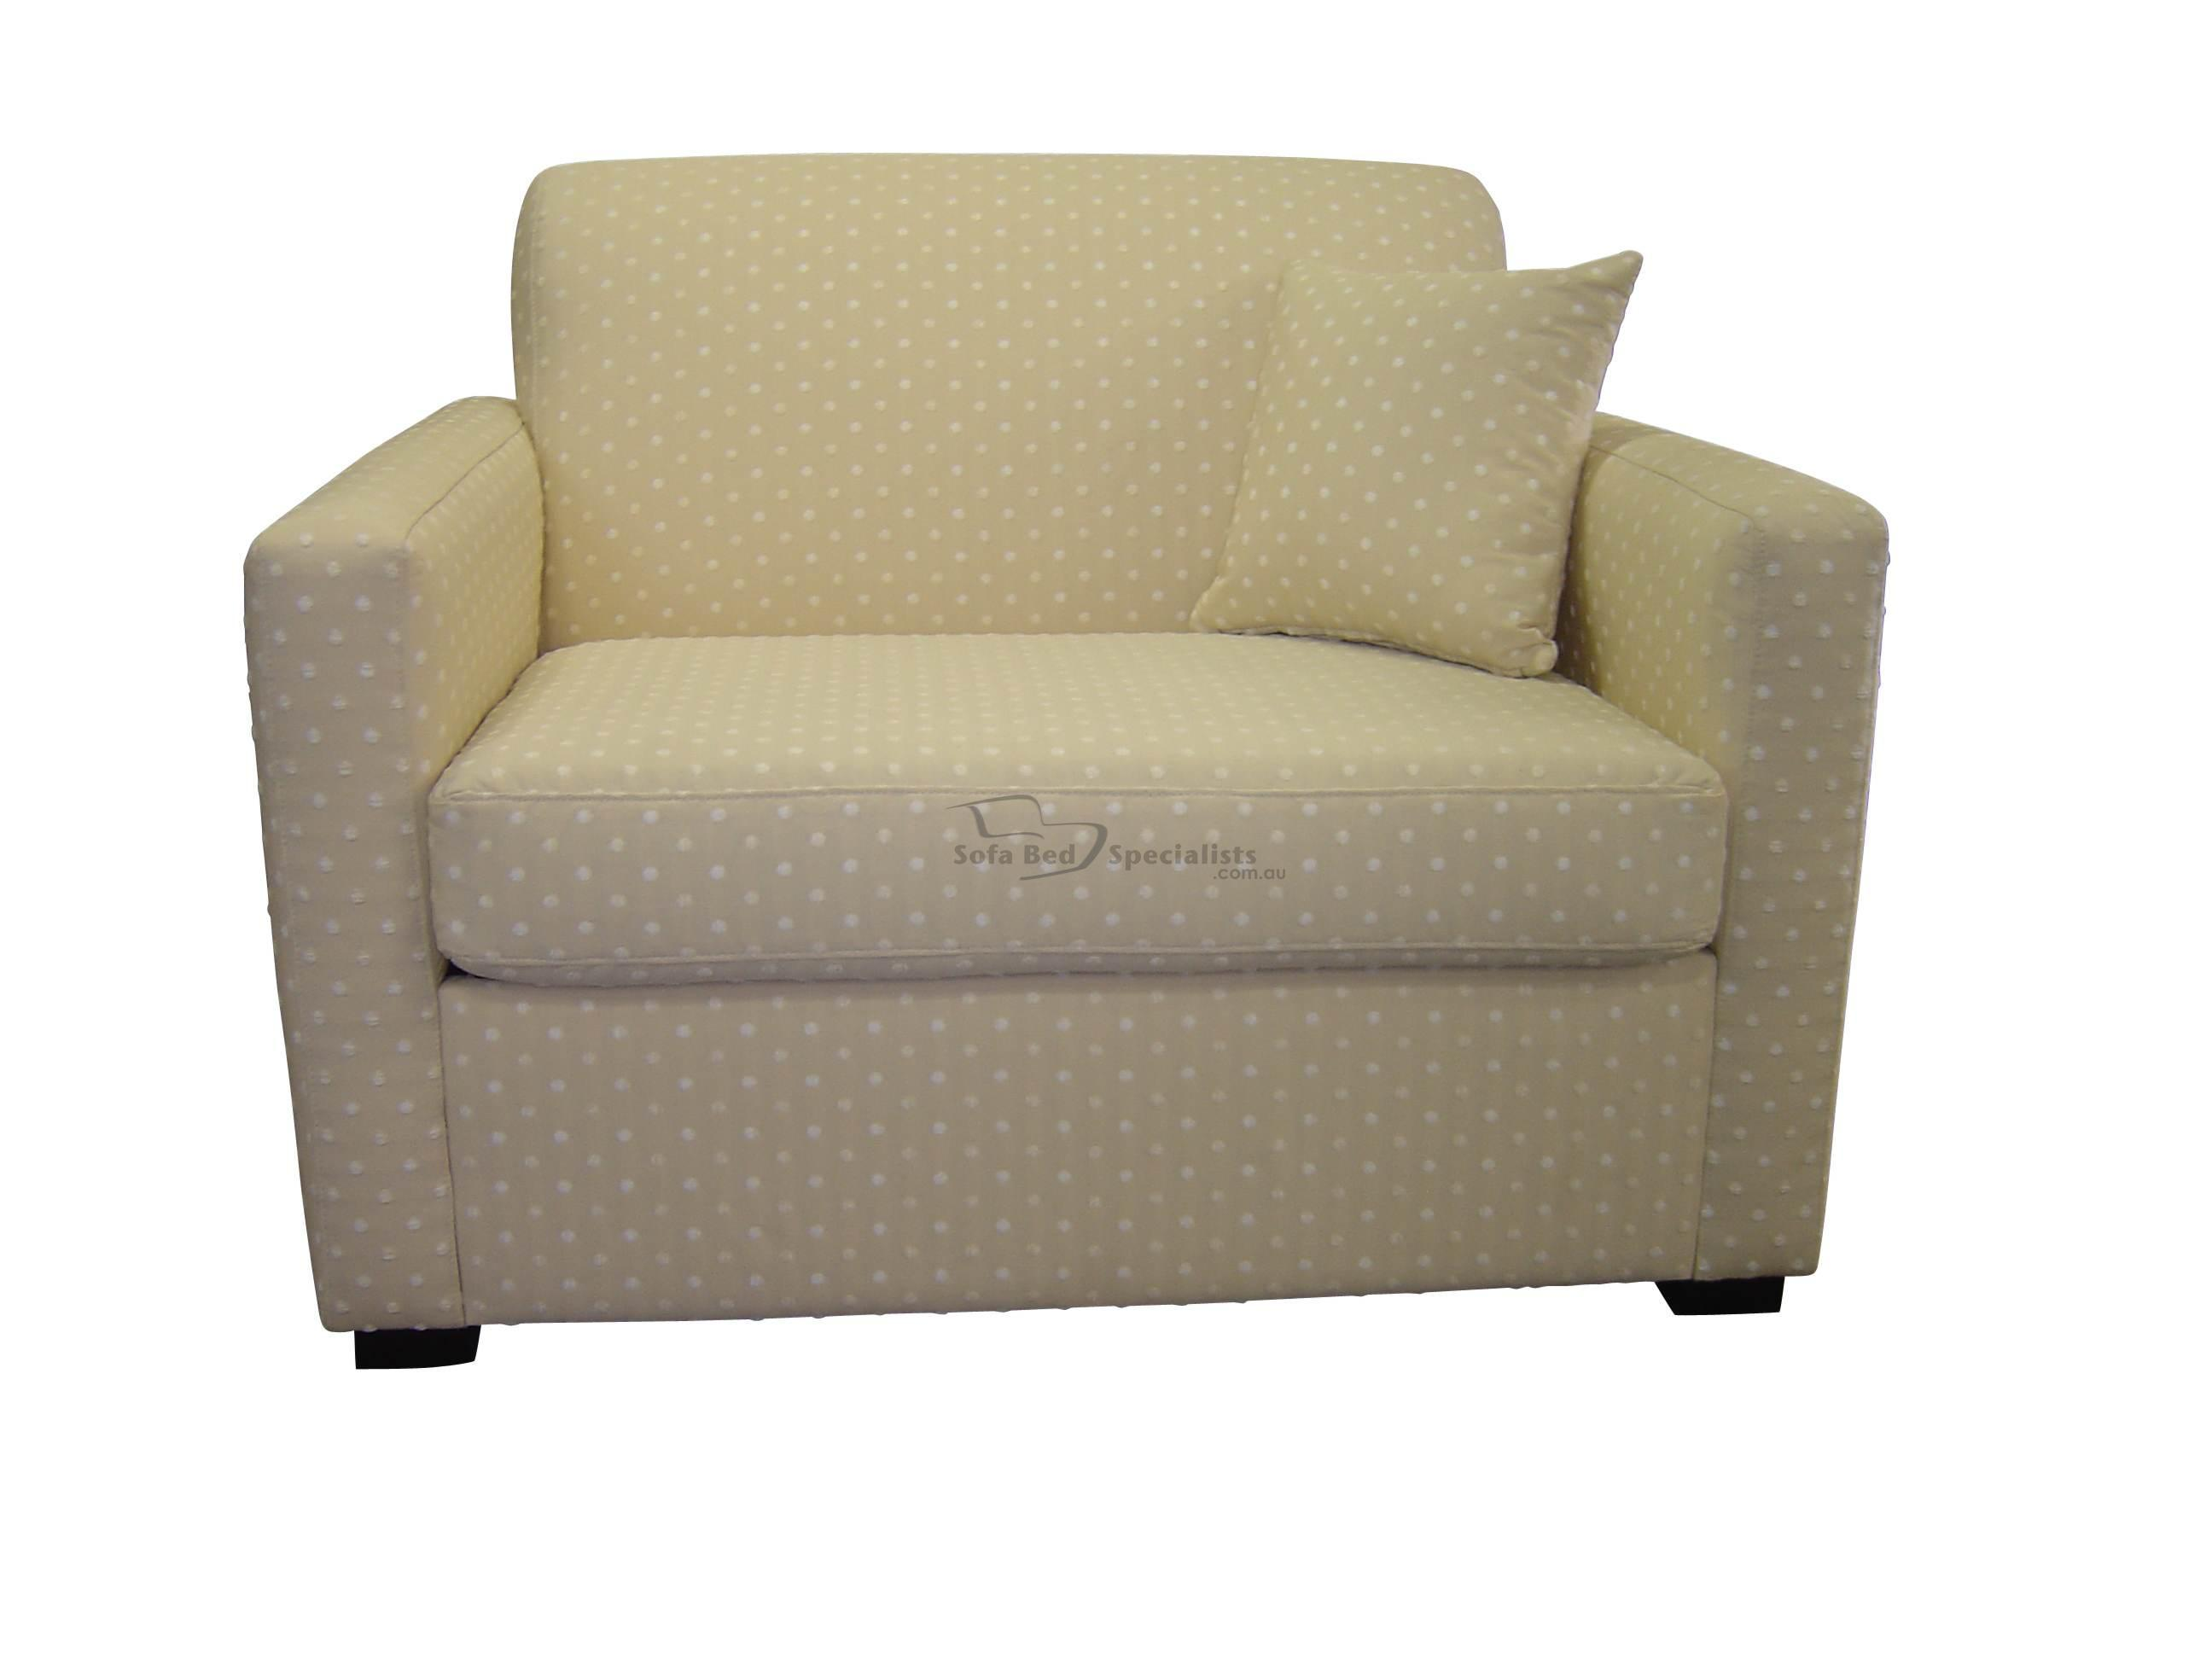 Einzelsessel Modern Chair Sofabed Bowman Sofa Bed Specialists